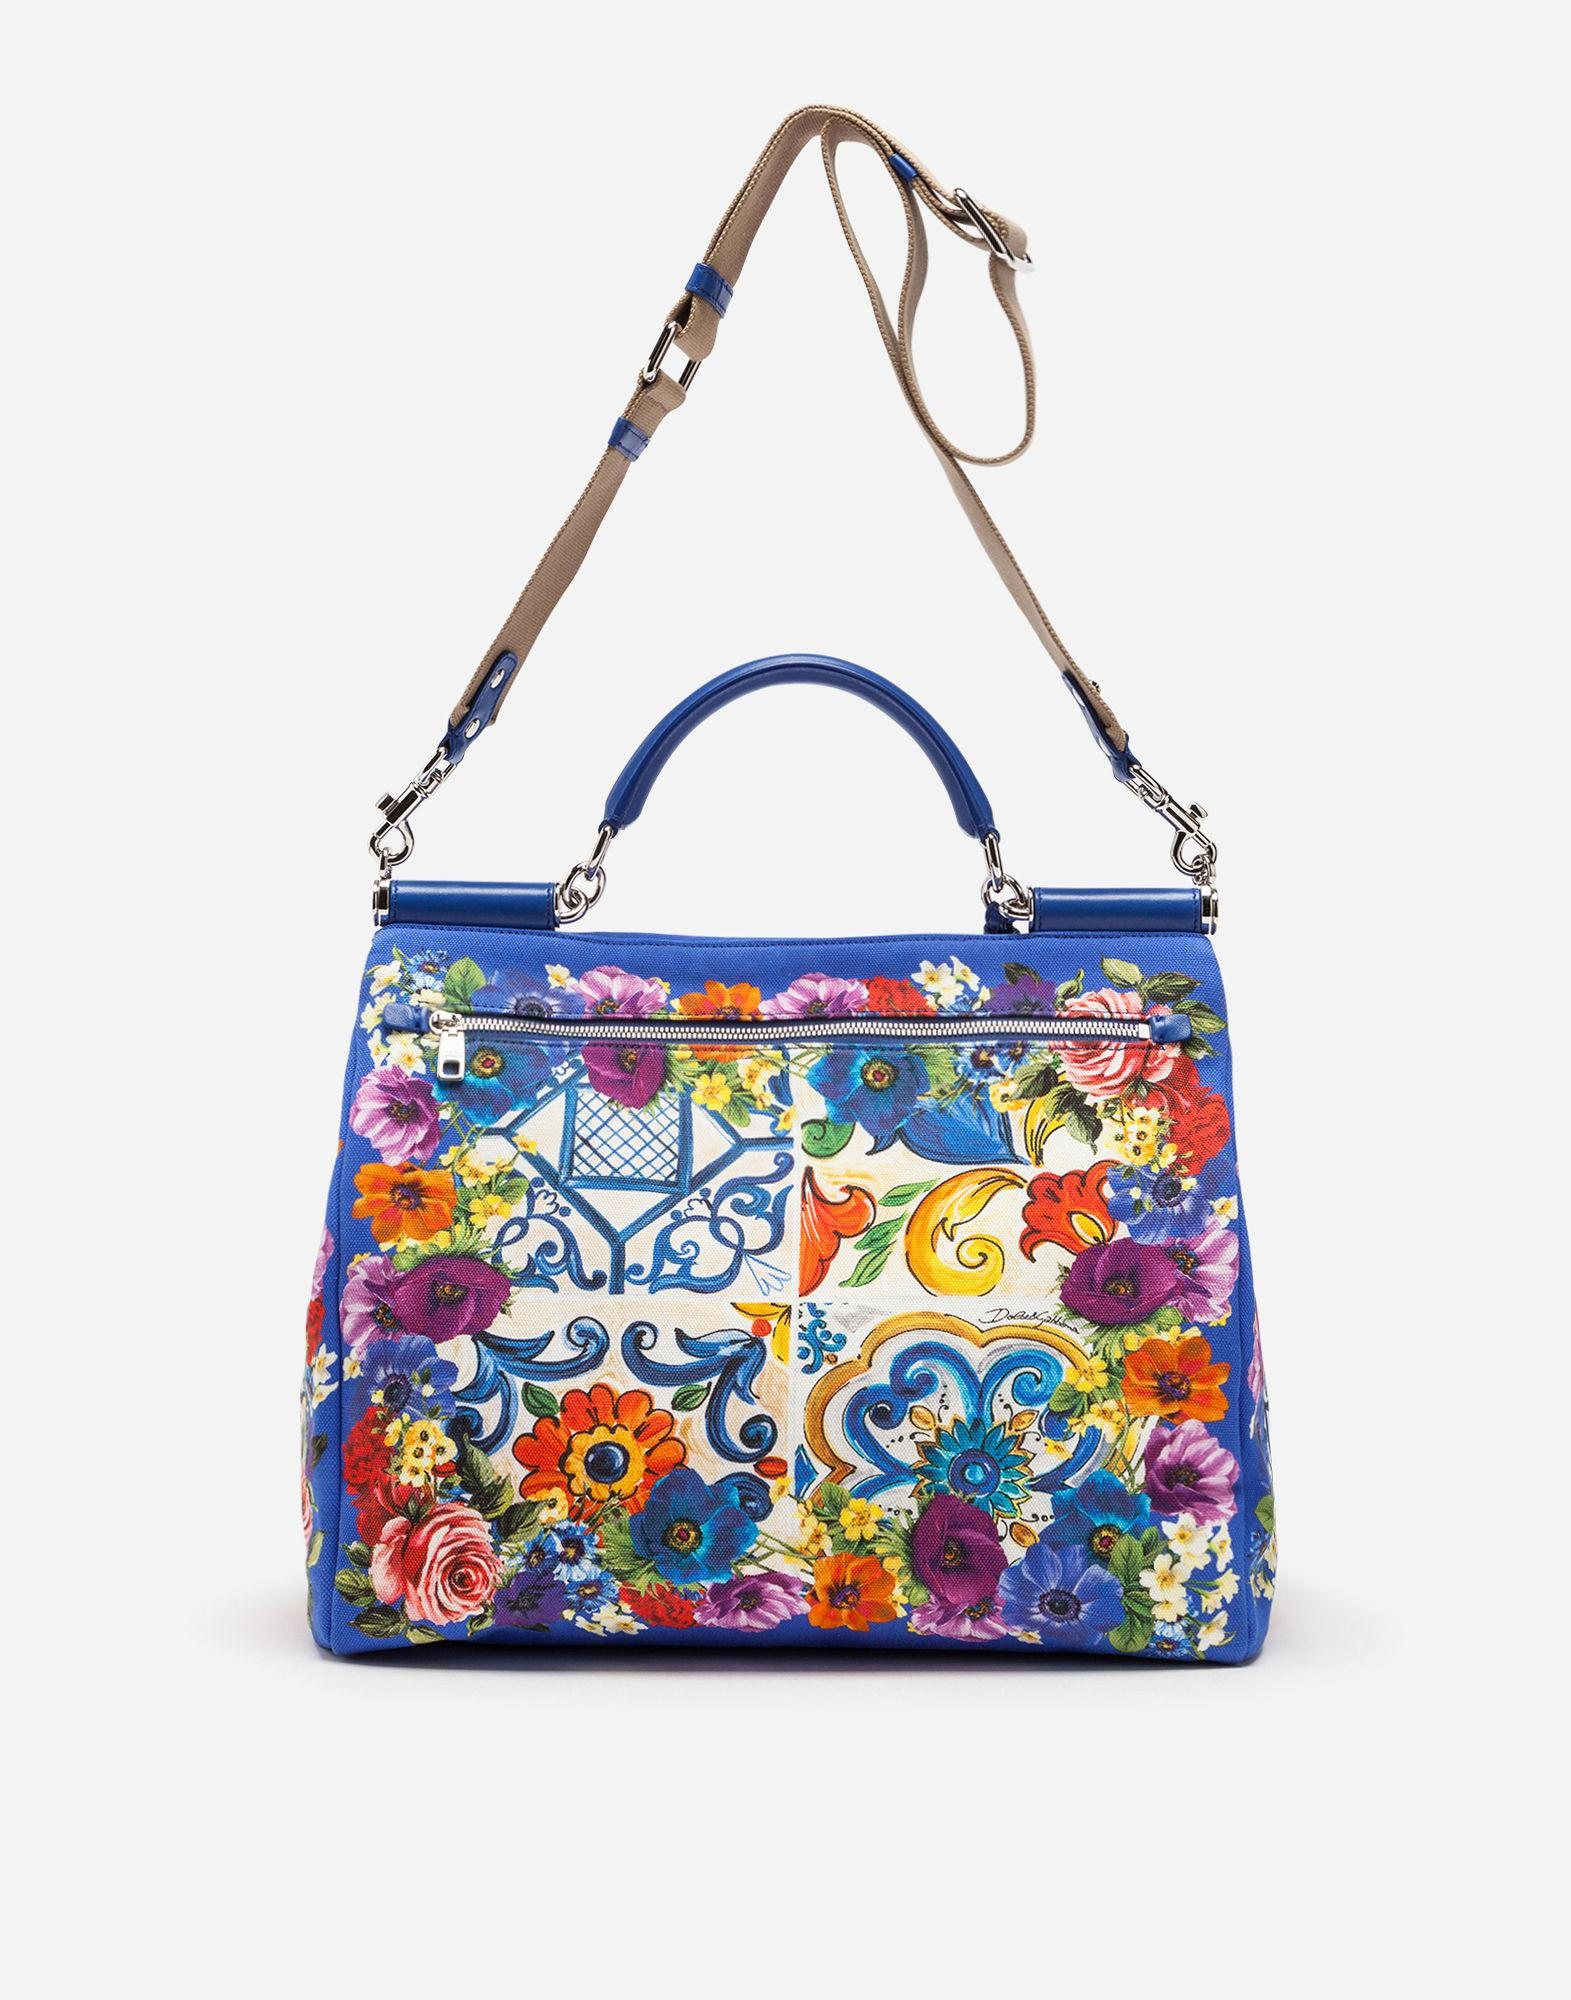 3a59021a5f Dolce   Gabbana Sicily Soft Bag In Majolica-print Canvas in Blue - Lyst